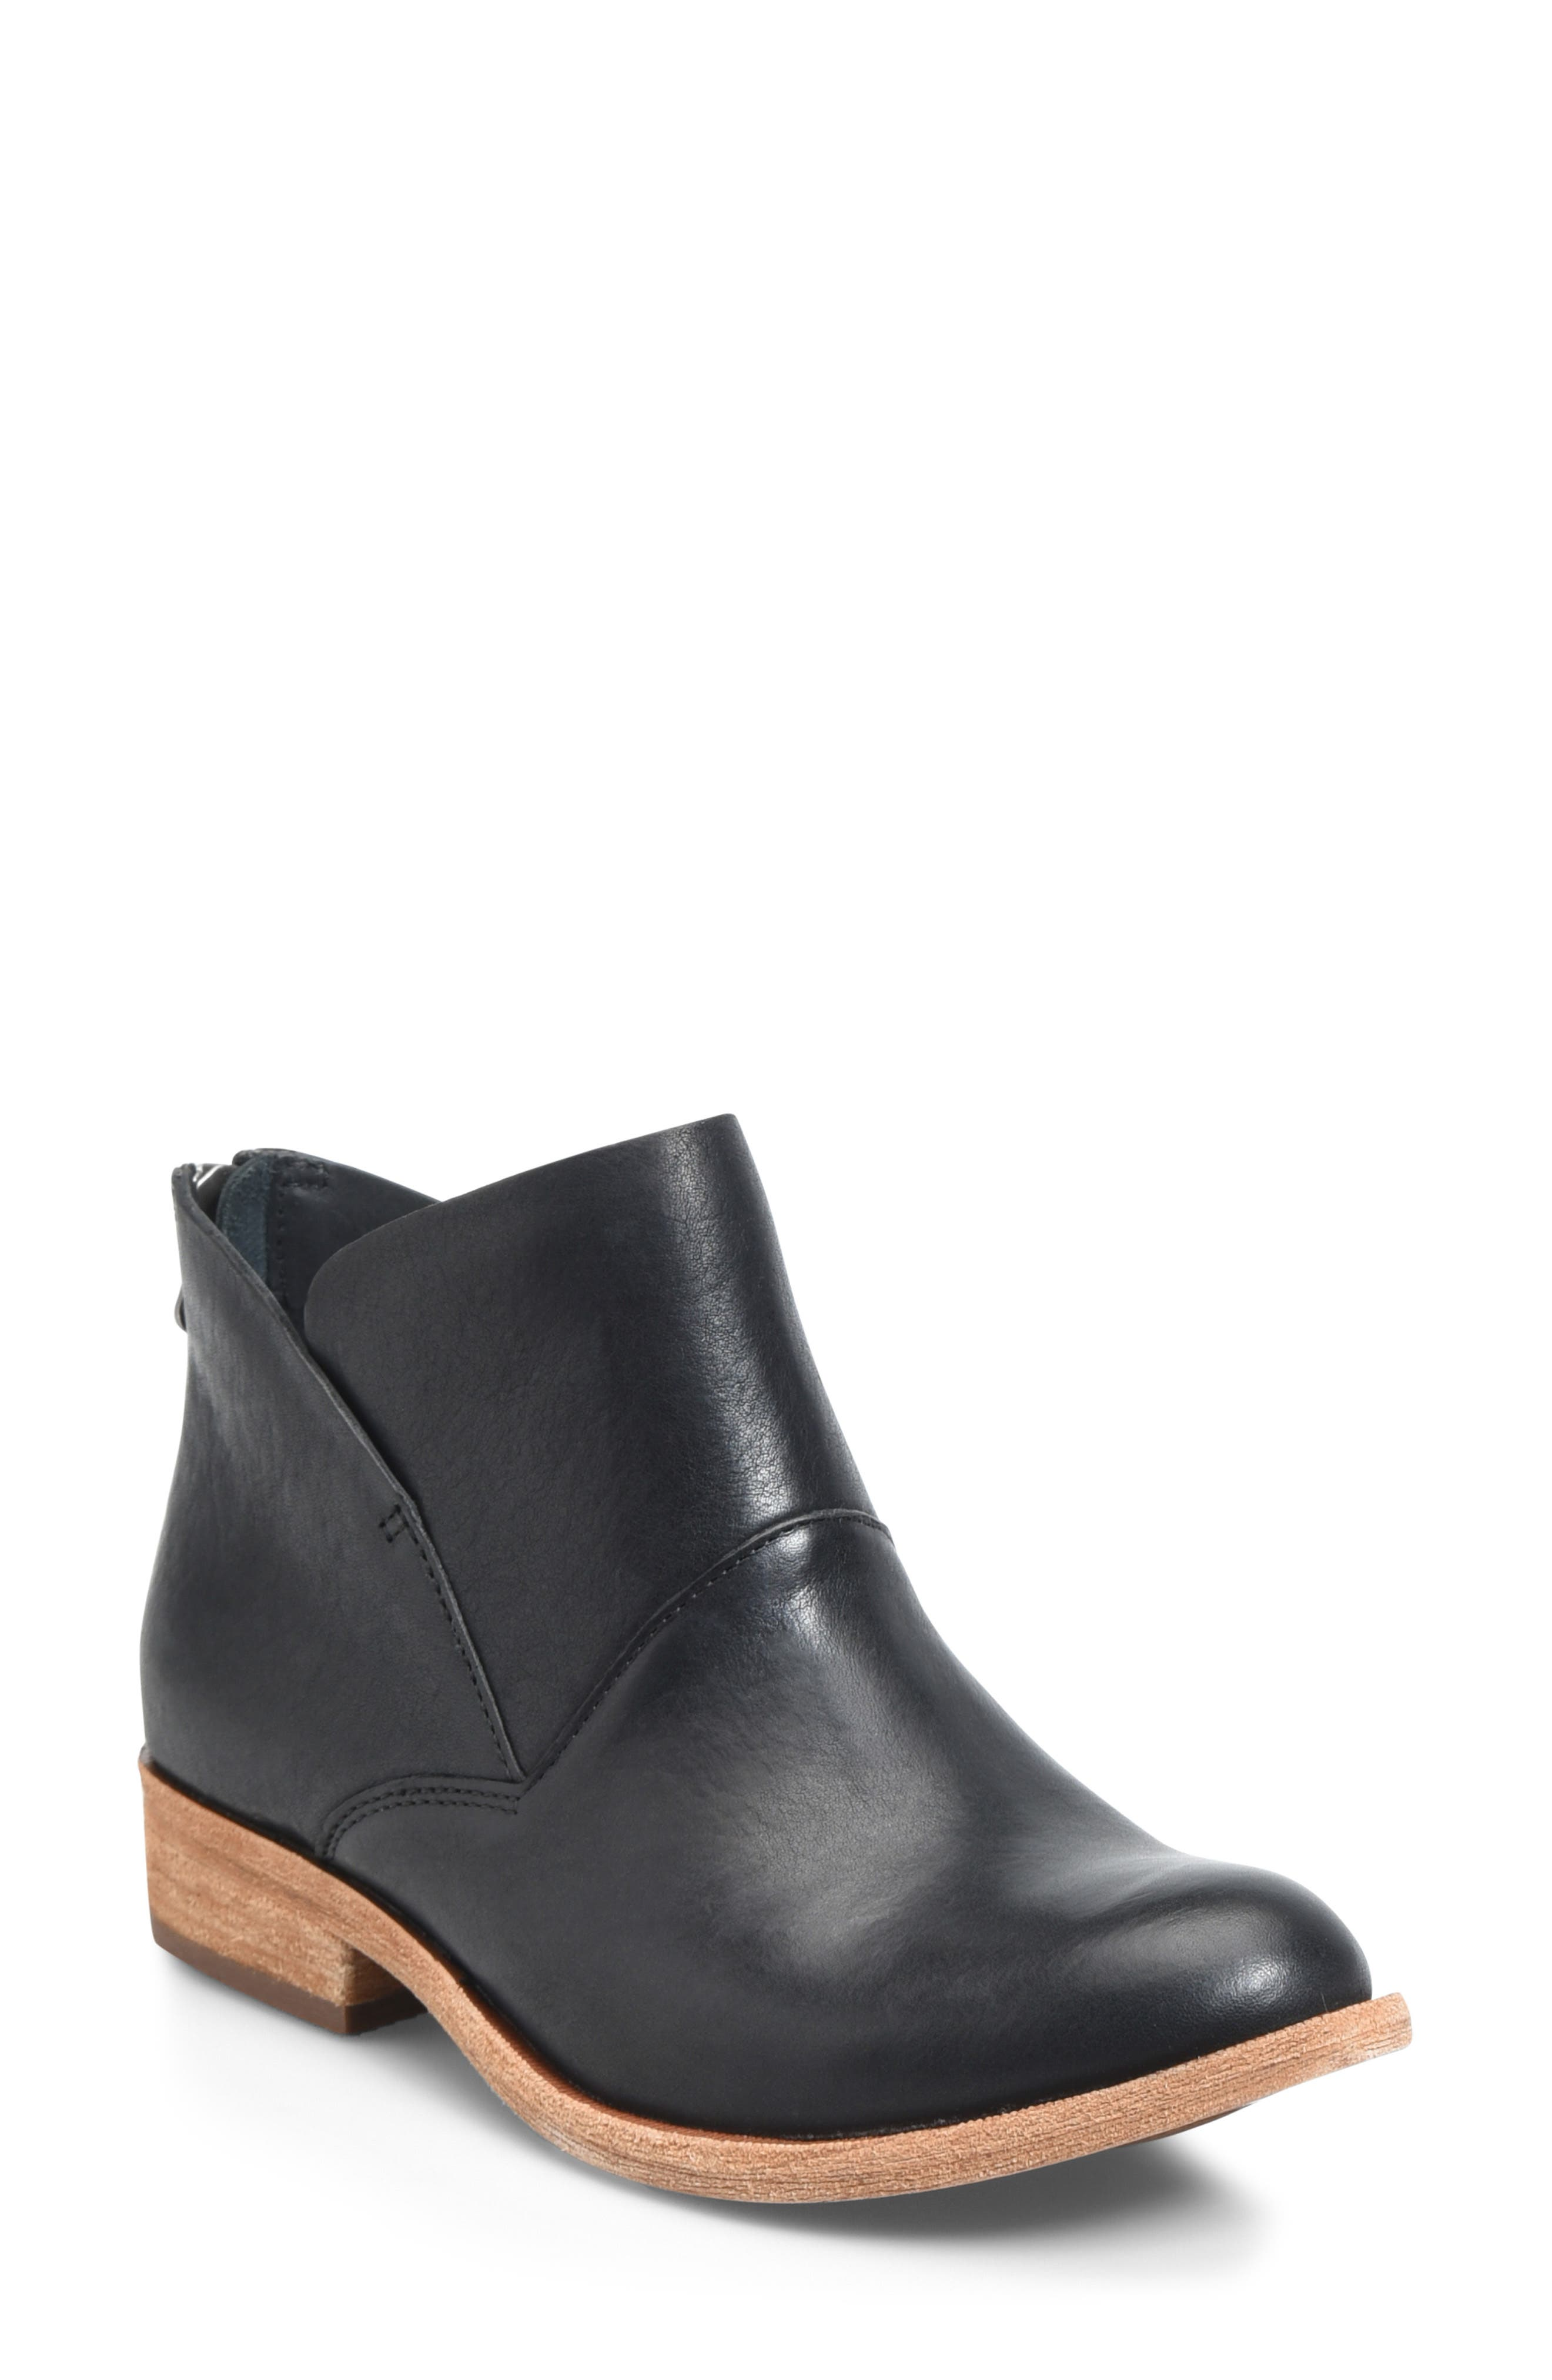 Ryder Ankle Boot,                             Main thumbnail 1, color,                             BLACK LEATHER